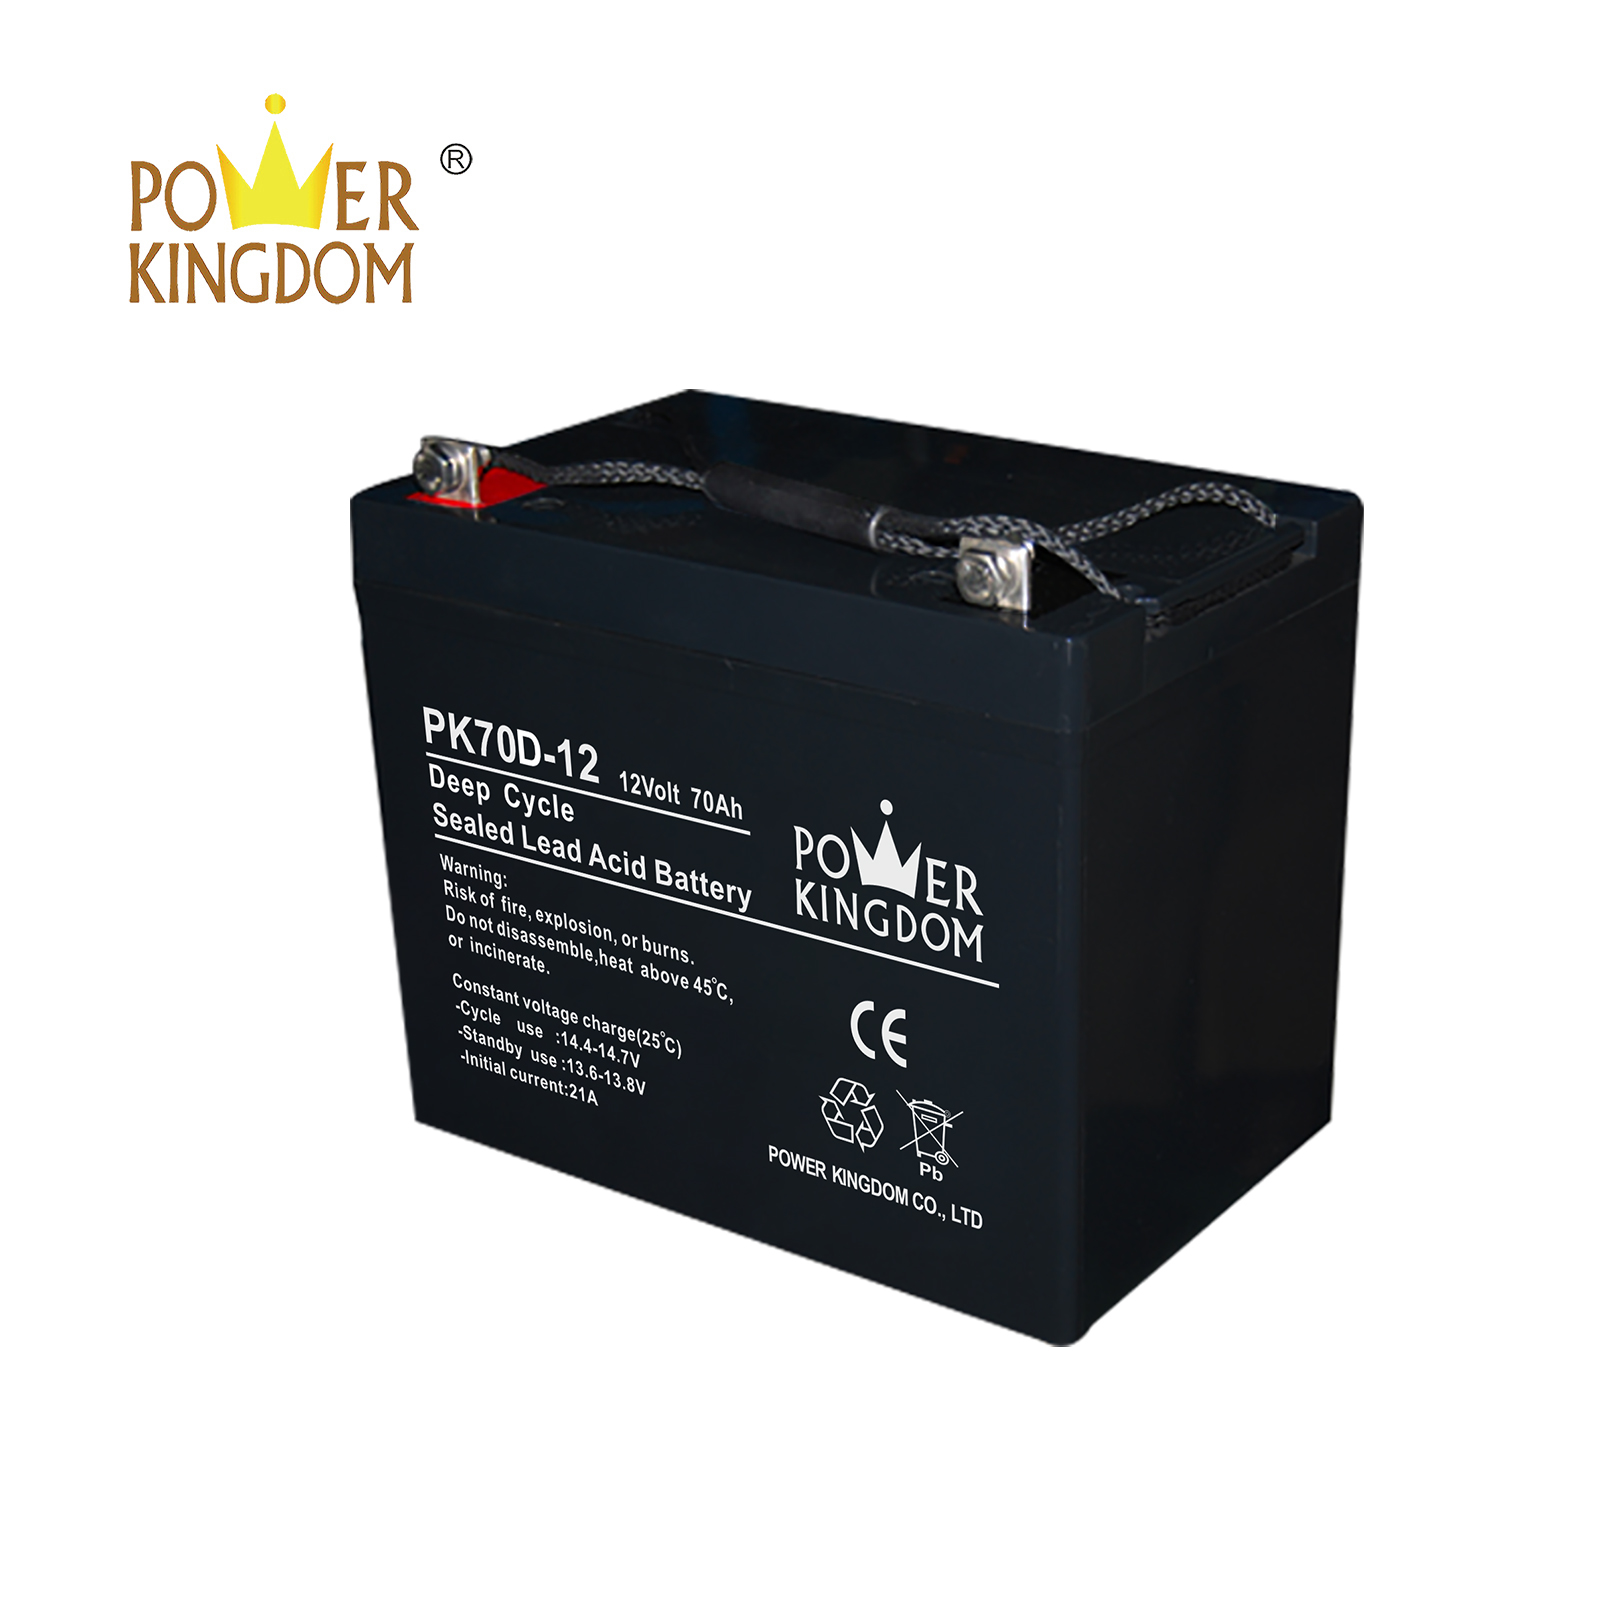 Power Kingdom battery 12 volt deep cycle company vehile and power storage system-2